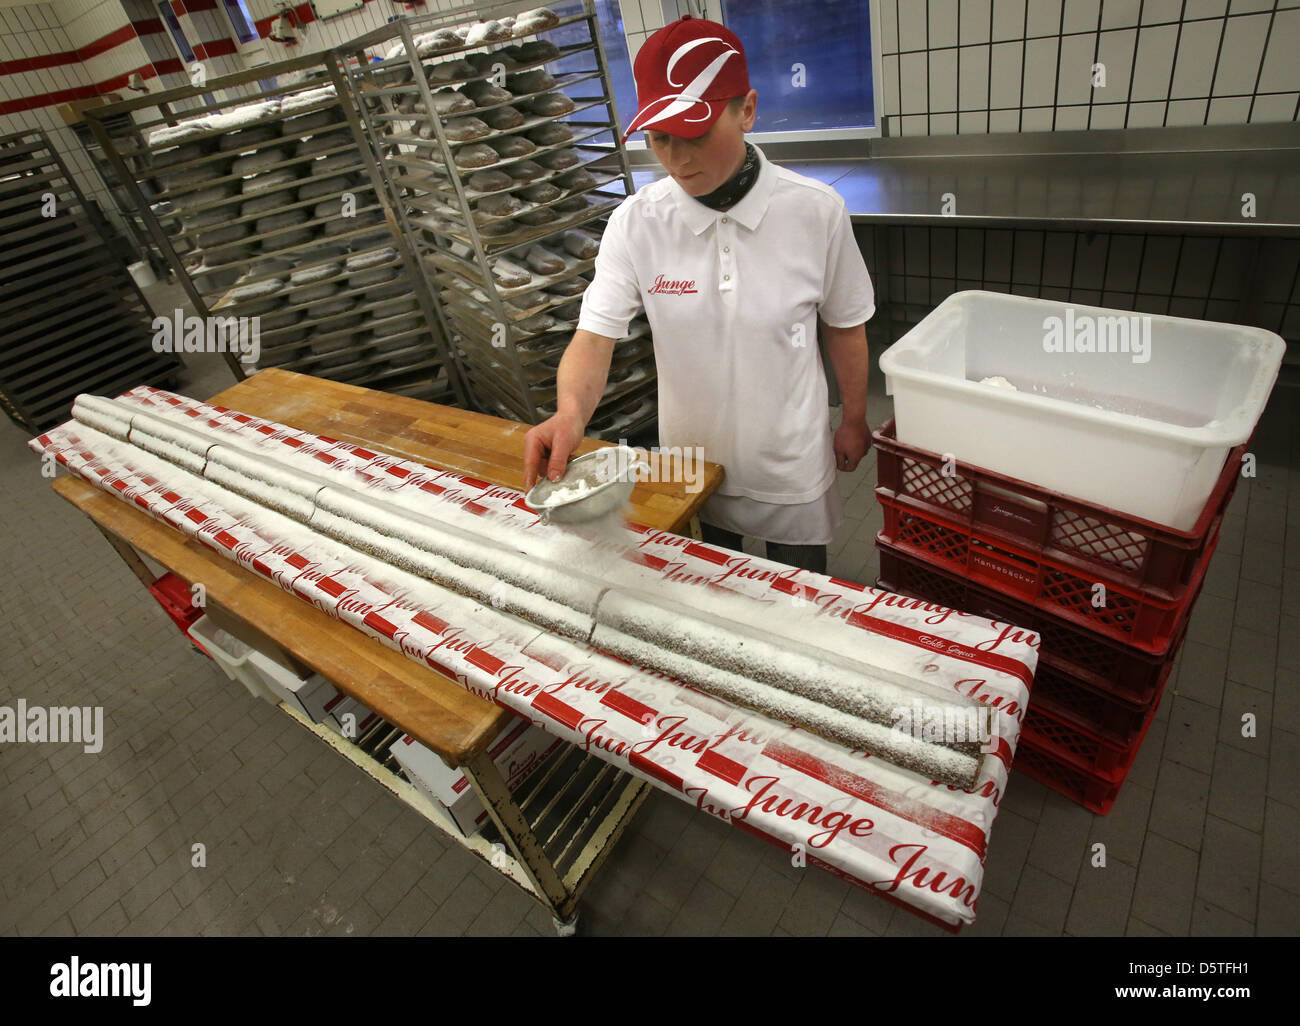 Sandra Jonas dusts the 3.6 m long giant Stollen with icing sugar at the city bakery Junge in Rostock, Germany, 23 - Stock Image